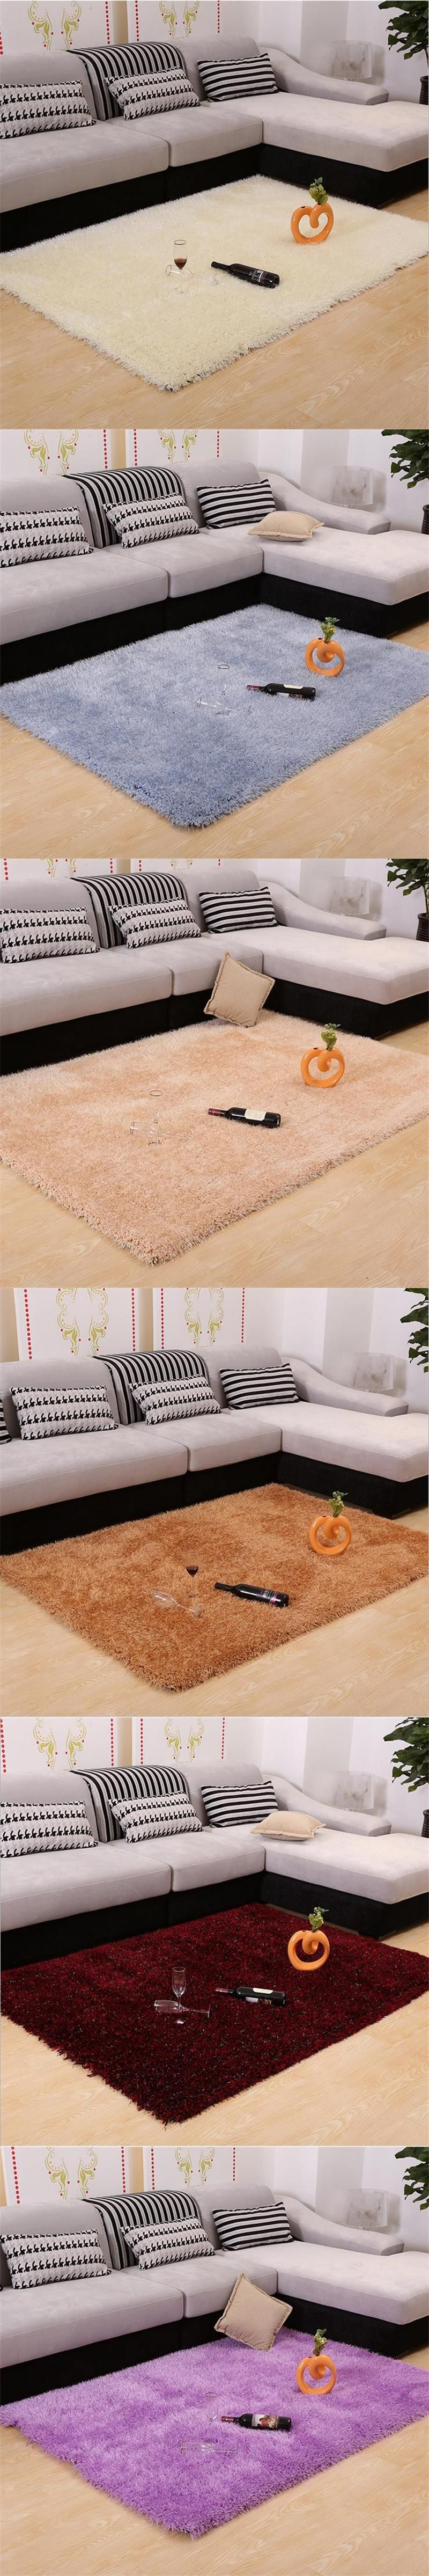 Thicken Stretch Yarn Carpets For Living Room Home Bedroom Rugs And Carpets Korean Brief Coffee Table Area Rug Floor M Living Room Carpet Bedroom Rug Floor Rugs